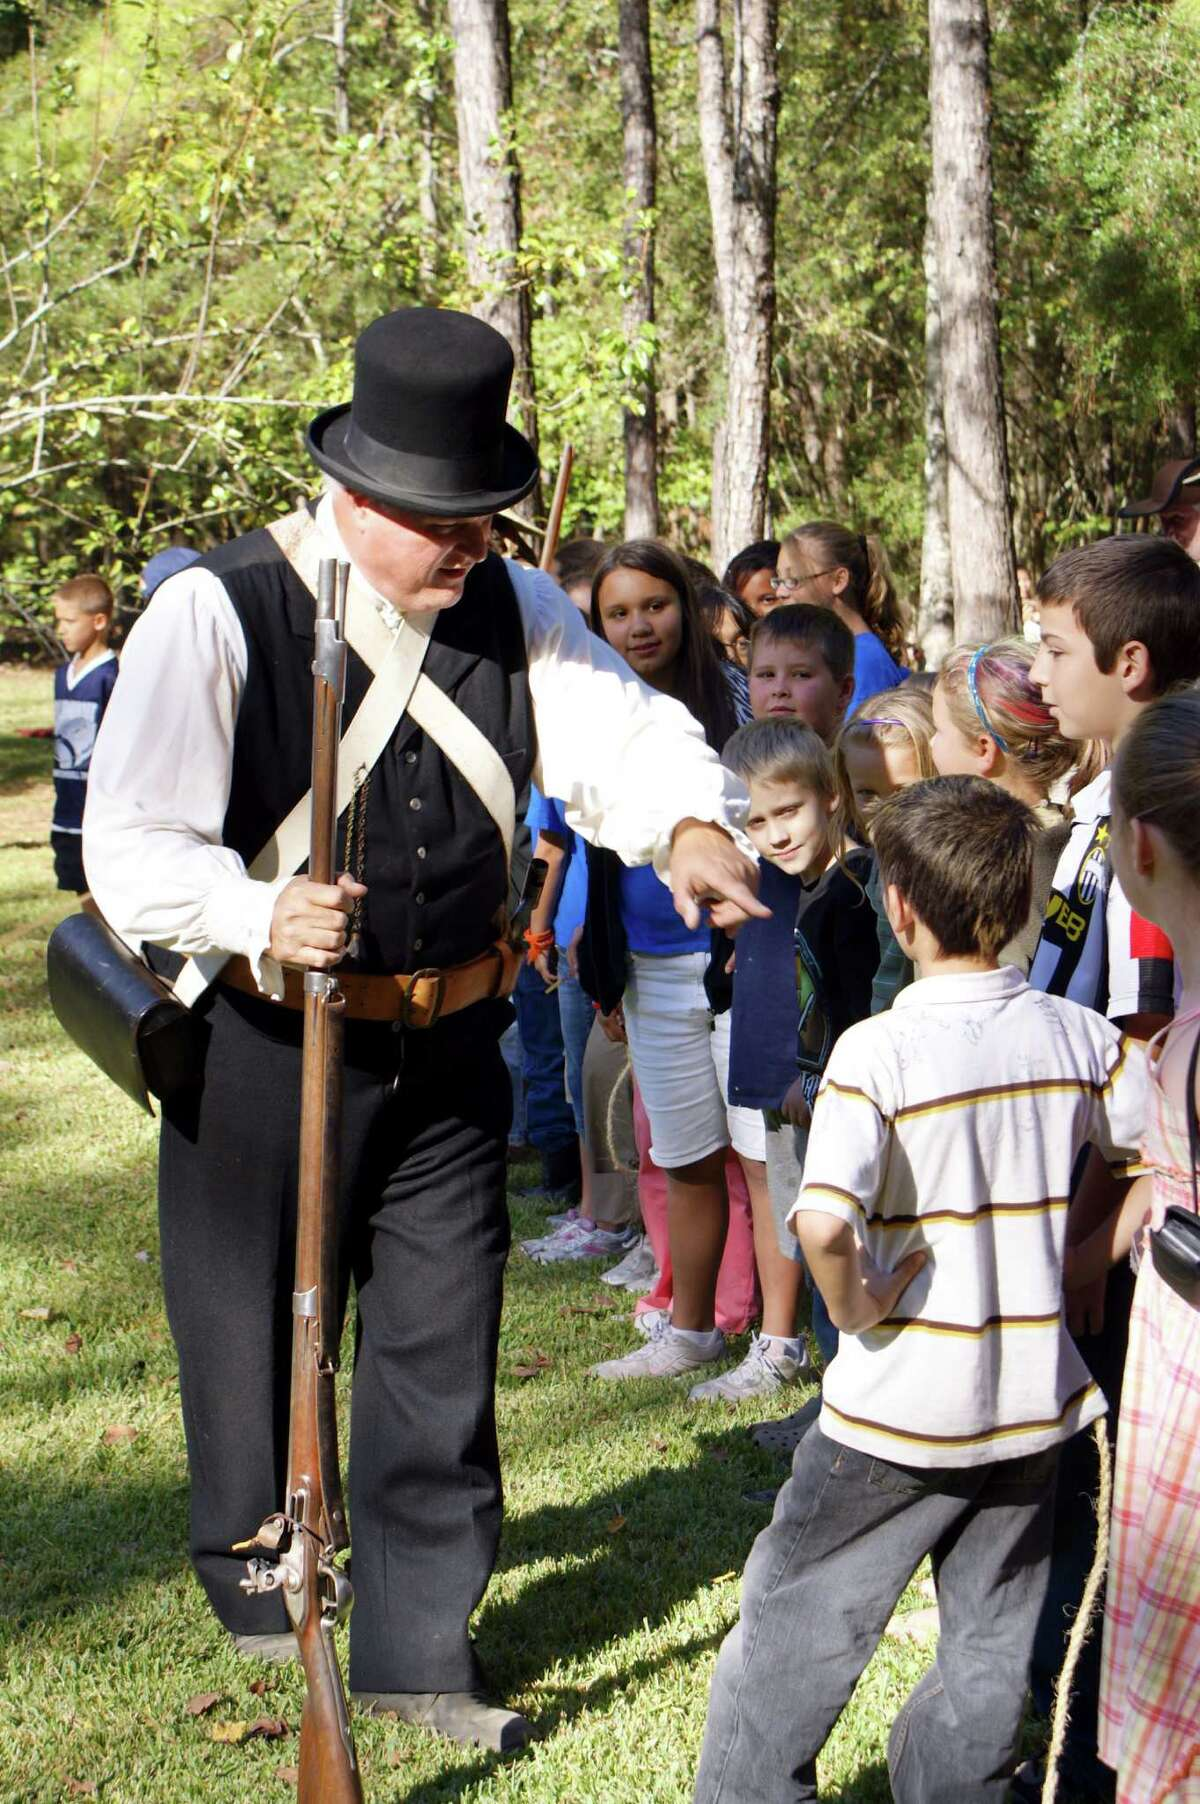 Jesse Jones Park Volunteers President Tom Whitesides dressed as an 1830s Texian musters young recruits for protecting the homestead, a scene set for Pioneer Day to be held Saturday, November 9 from 10 a.m. to 4 p.m.